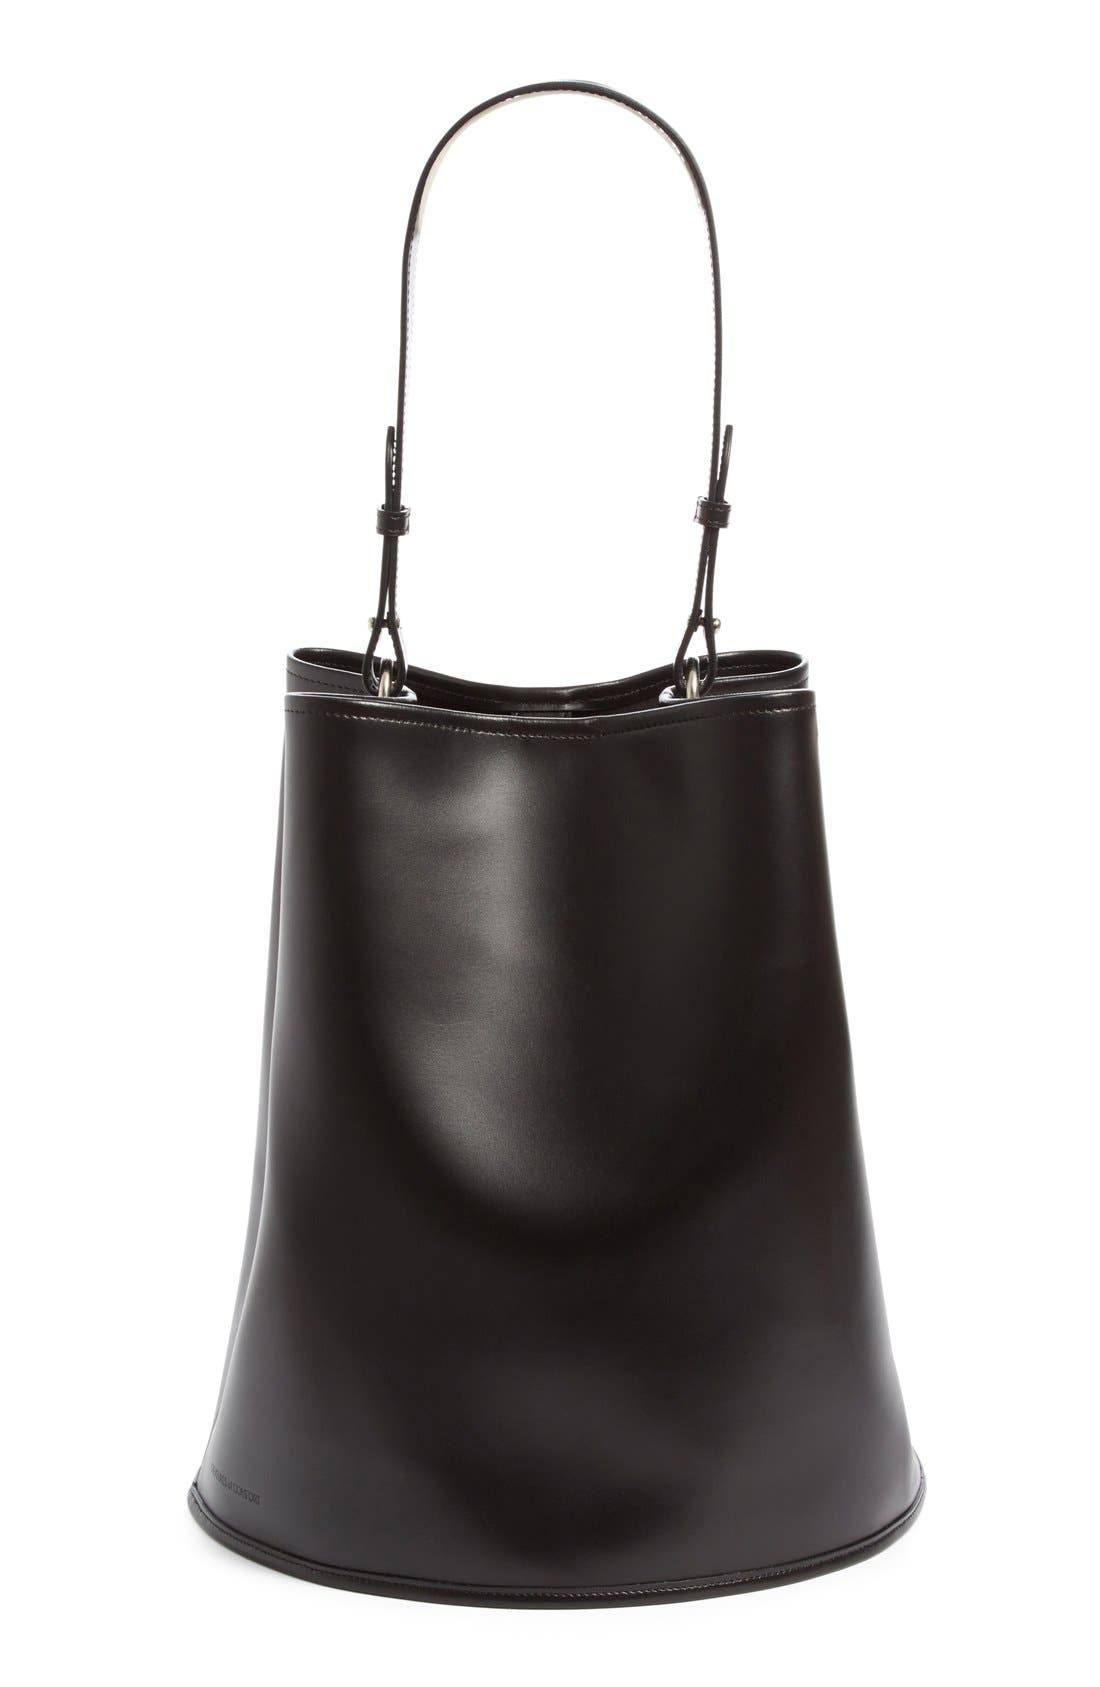 Alternate Image 1 Selected - Creatures of Comfort Large Calfskin Leather Bucket Bag